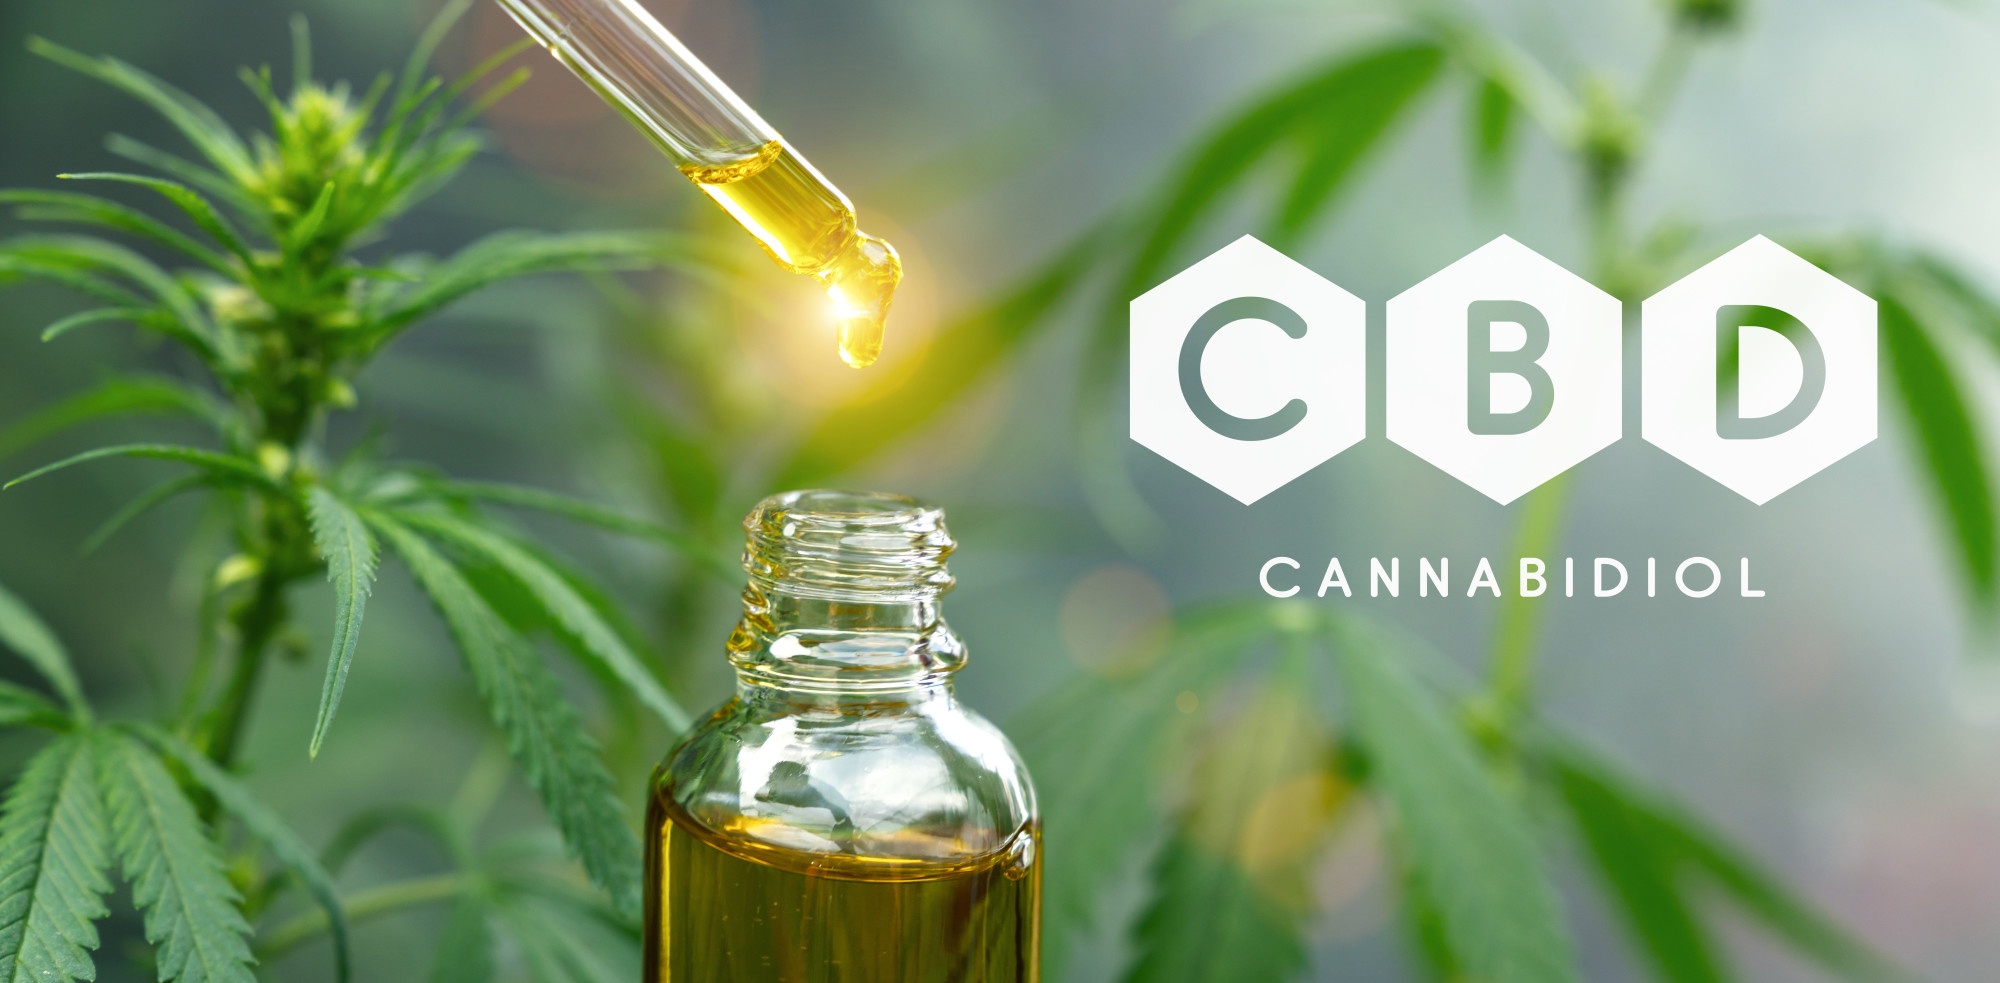 CBD is getting it's fair share of press these days but what is it really good for? These CBD oil facts will give you insight into its uses and benefits.